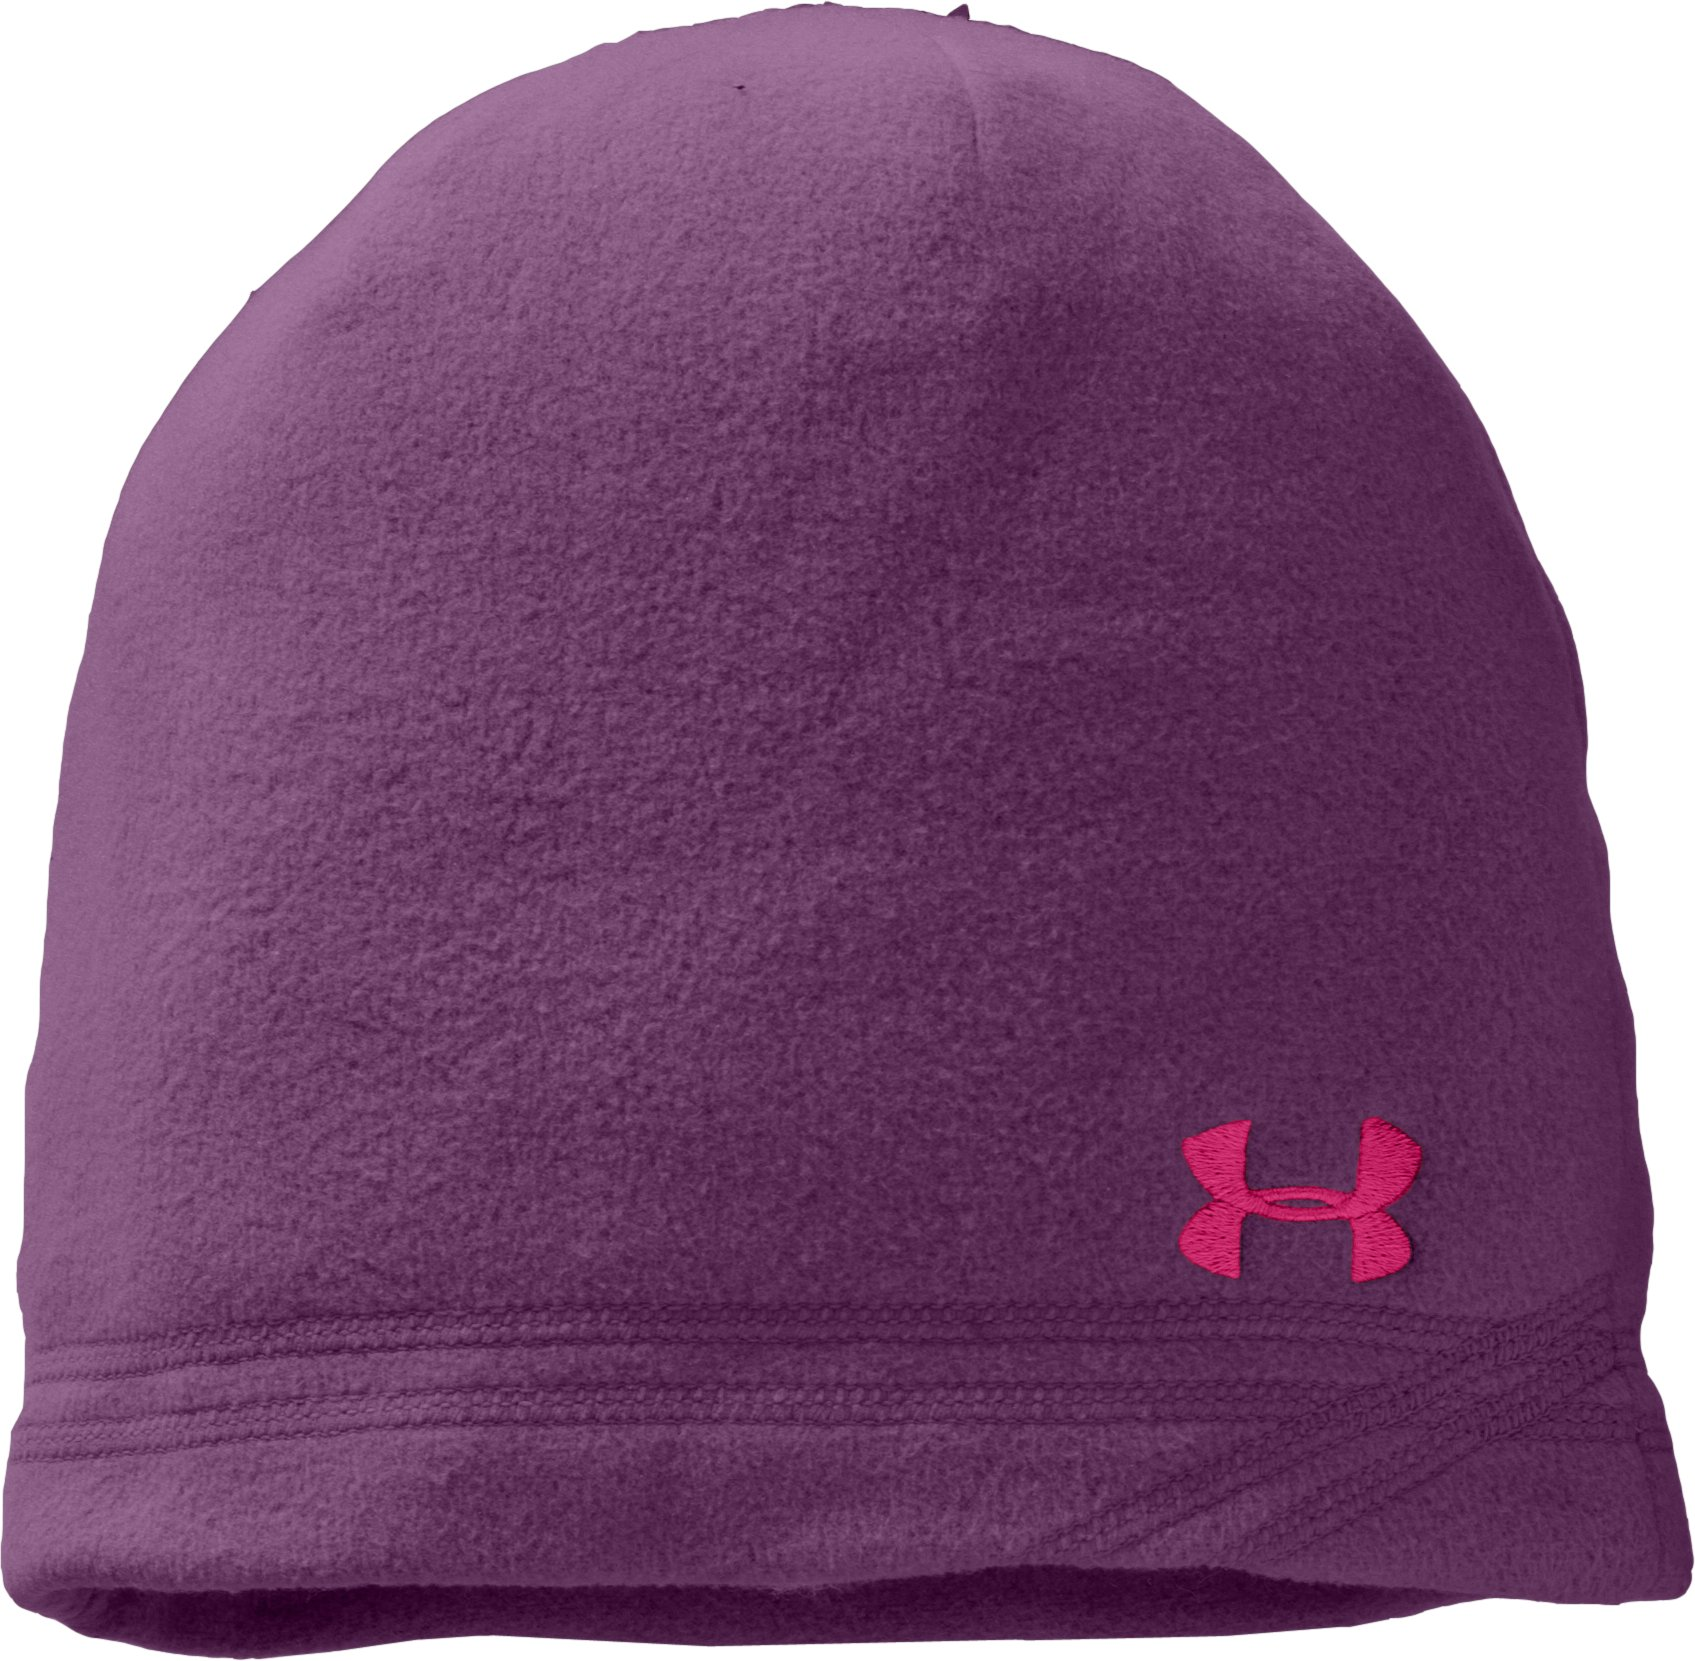 Women's UA Blustery Beanie, Rivalry,